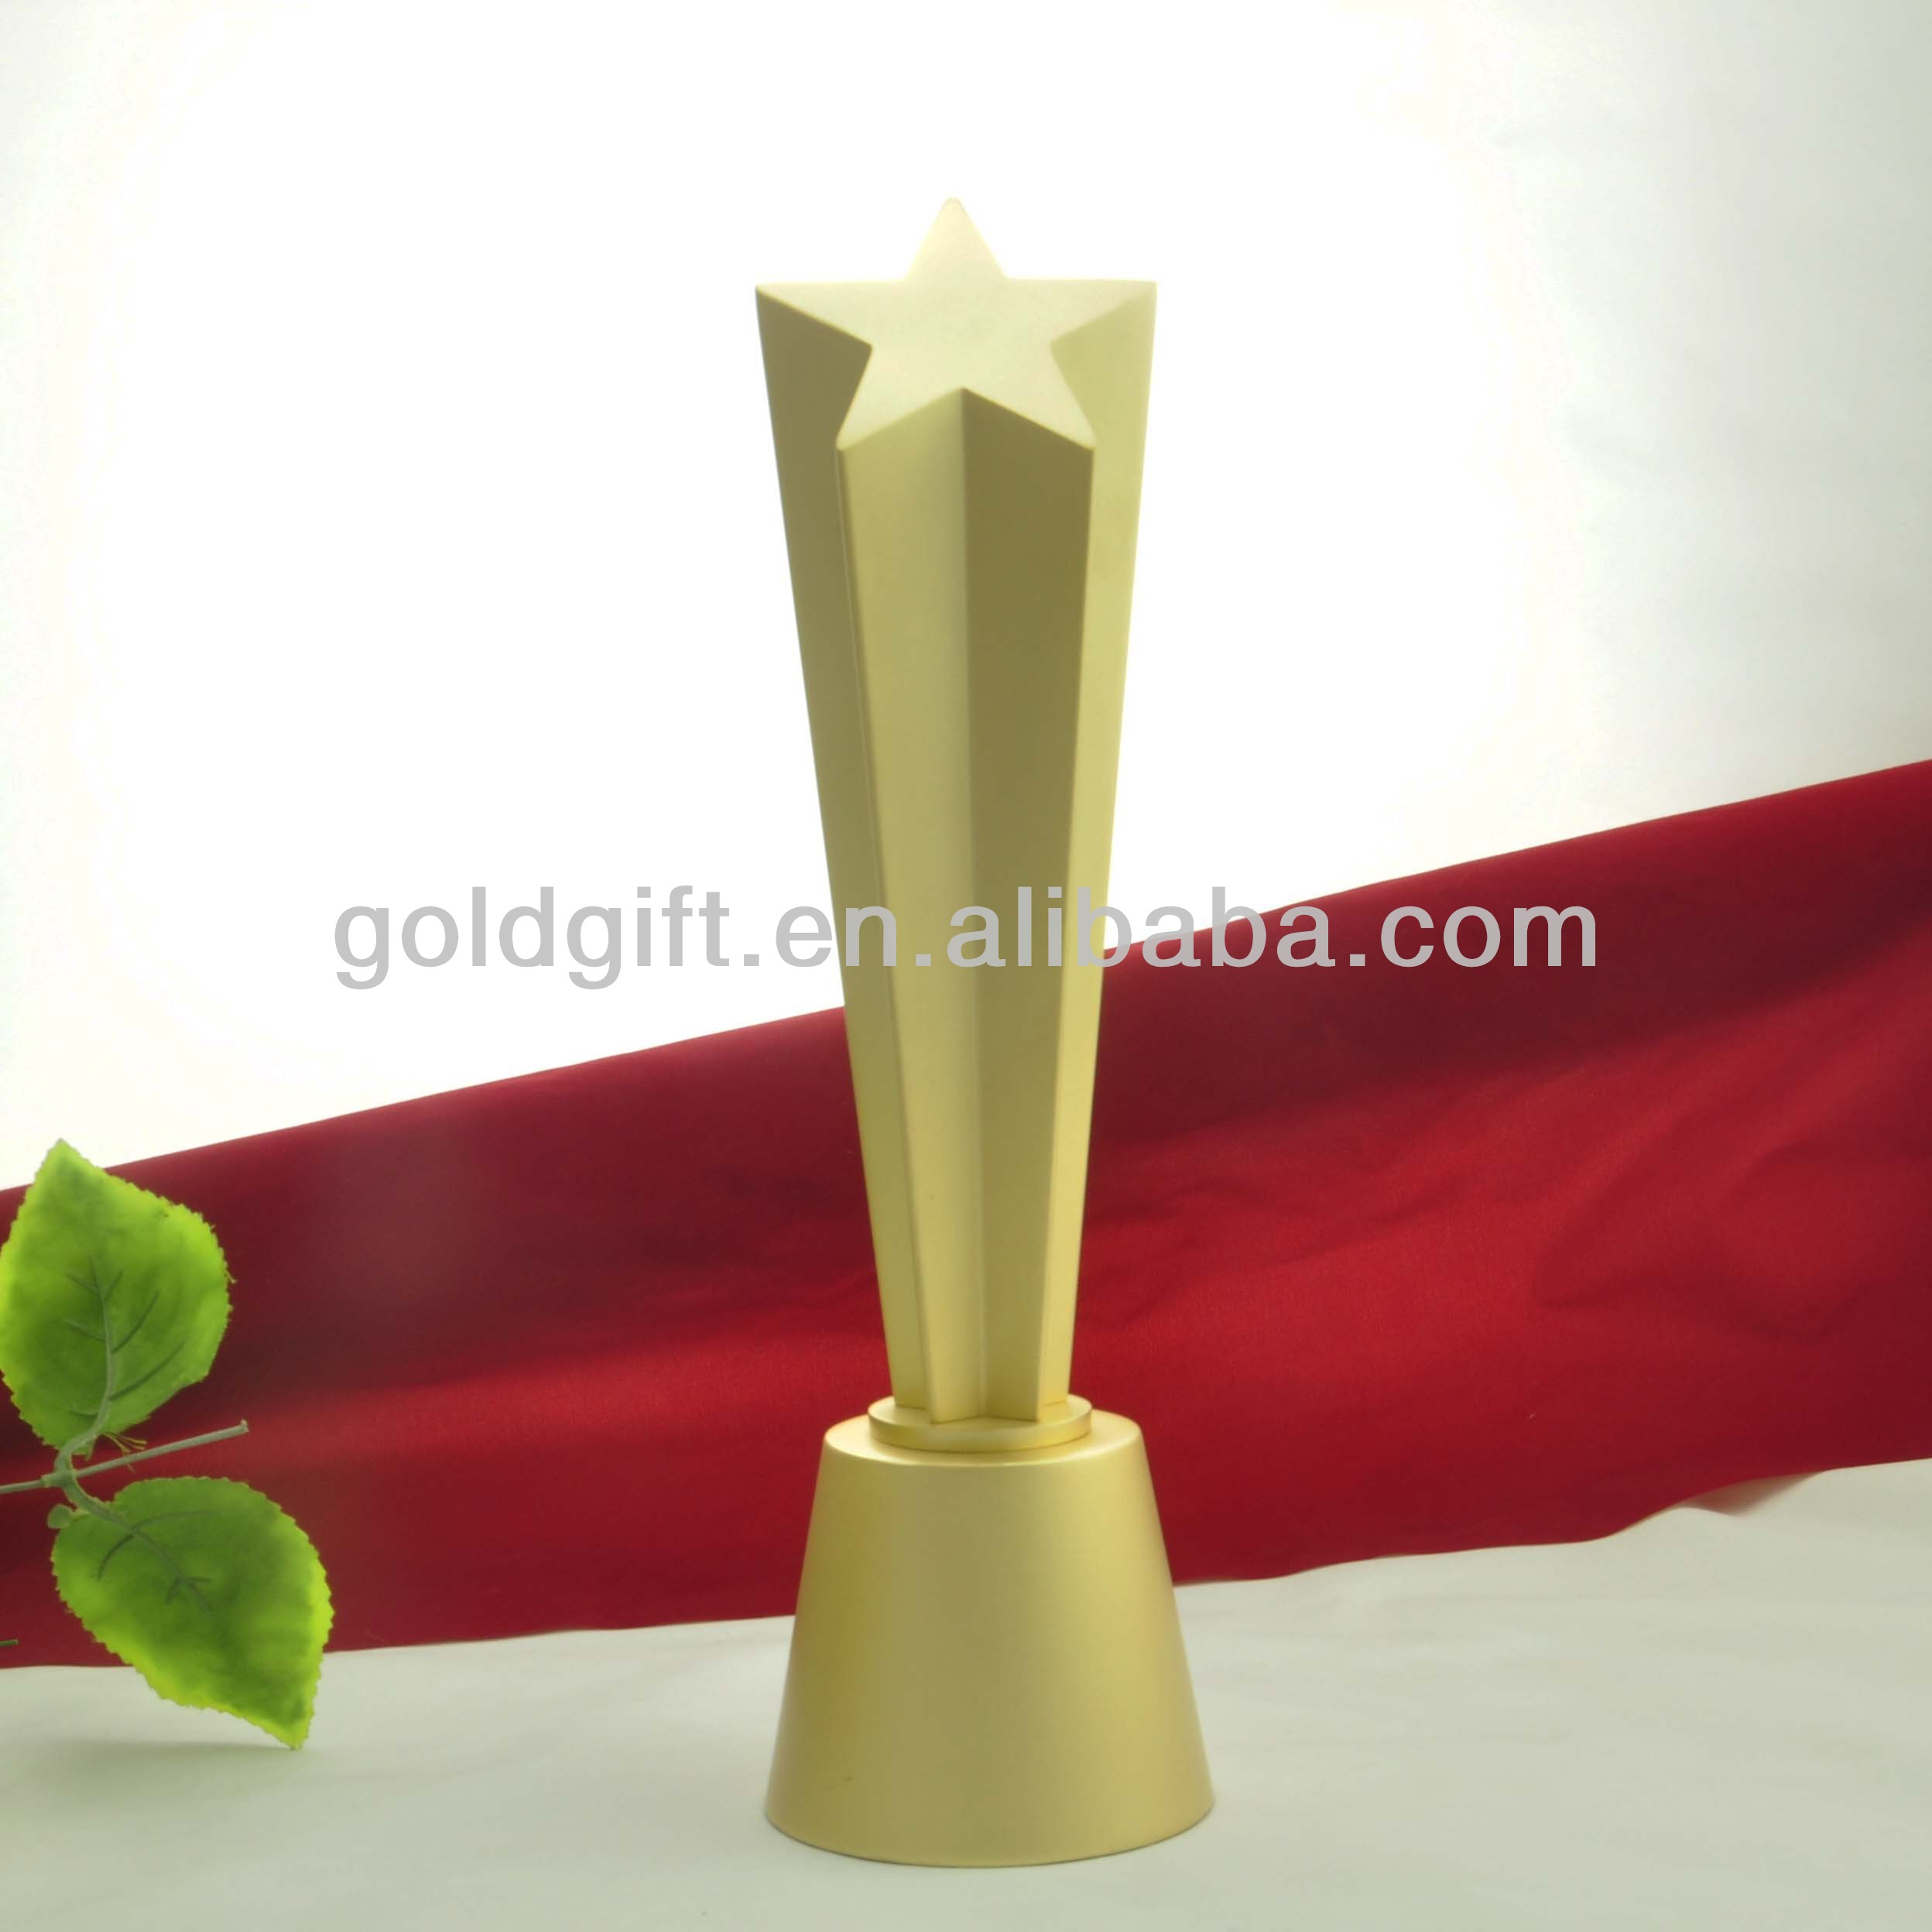 Hohe Gold Star Trophy Gold basiert